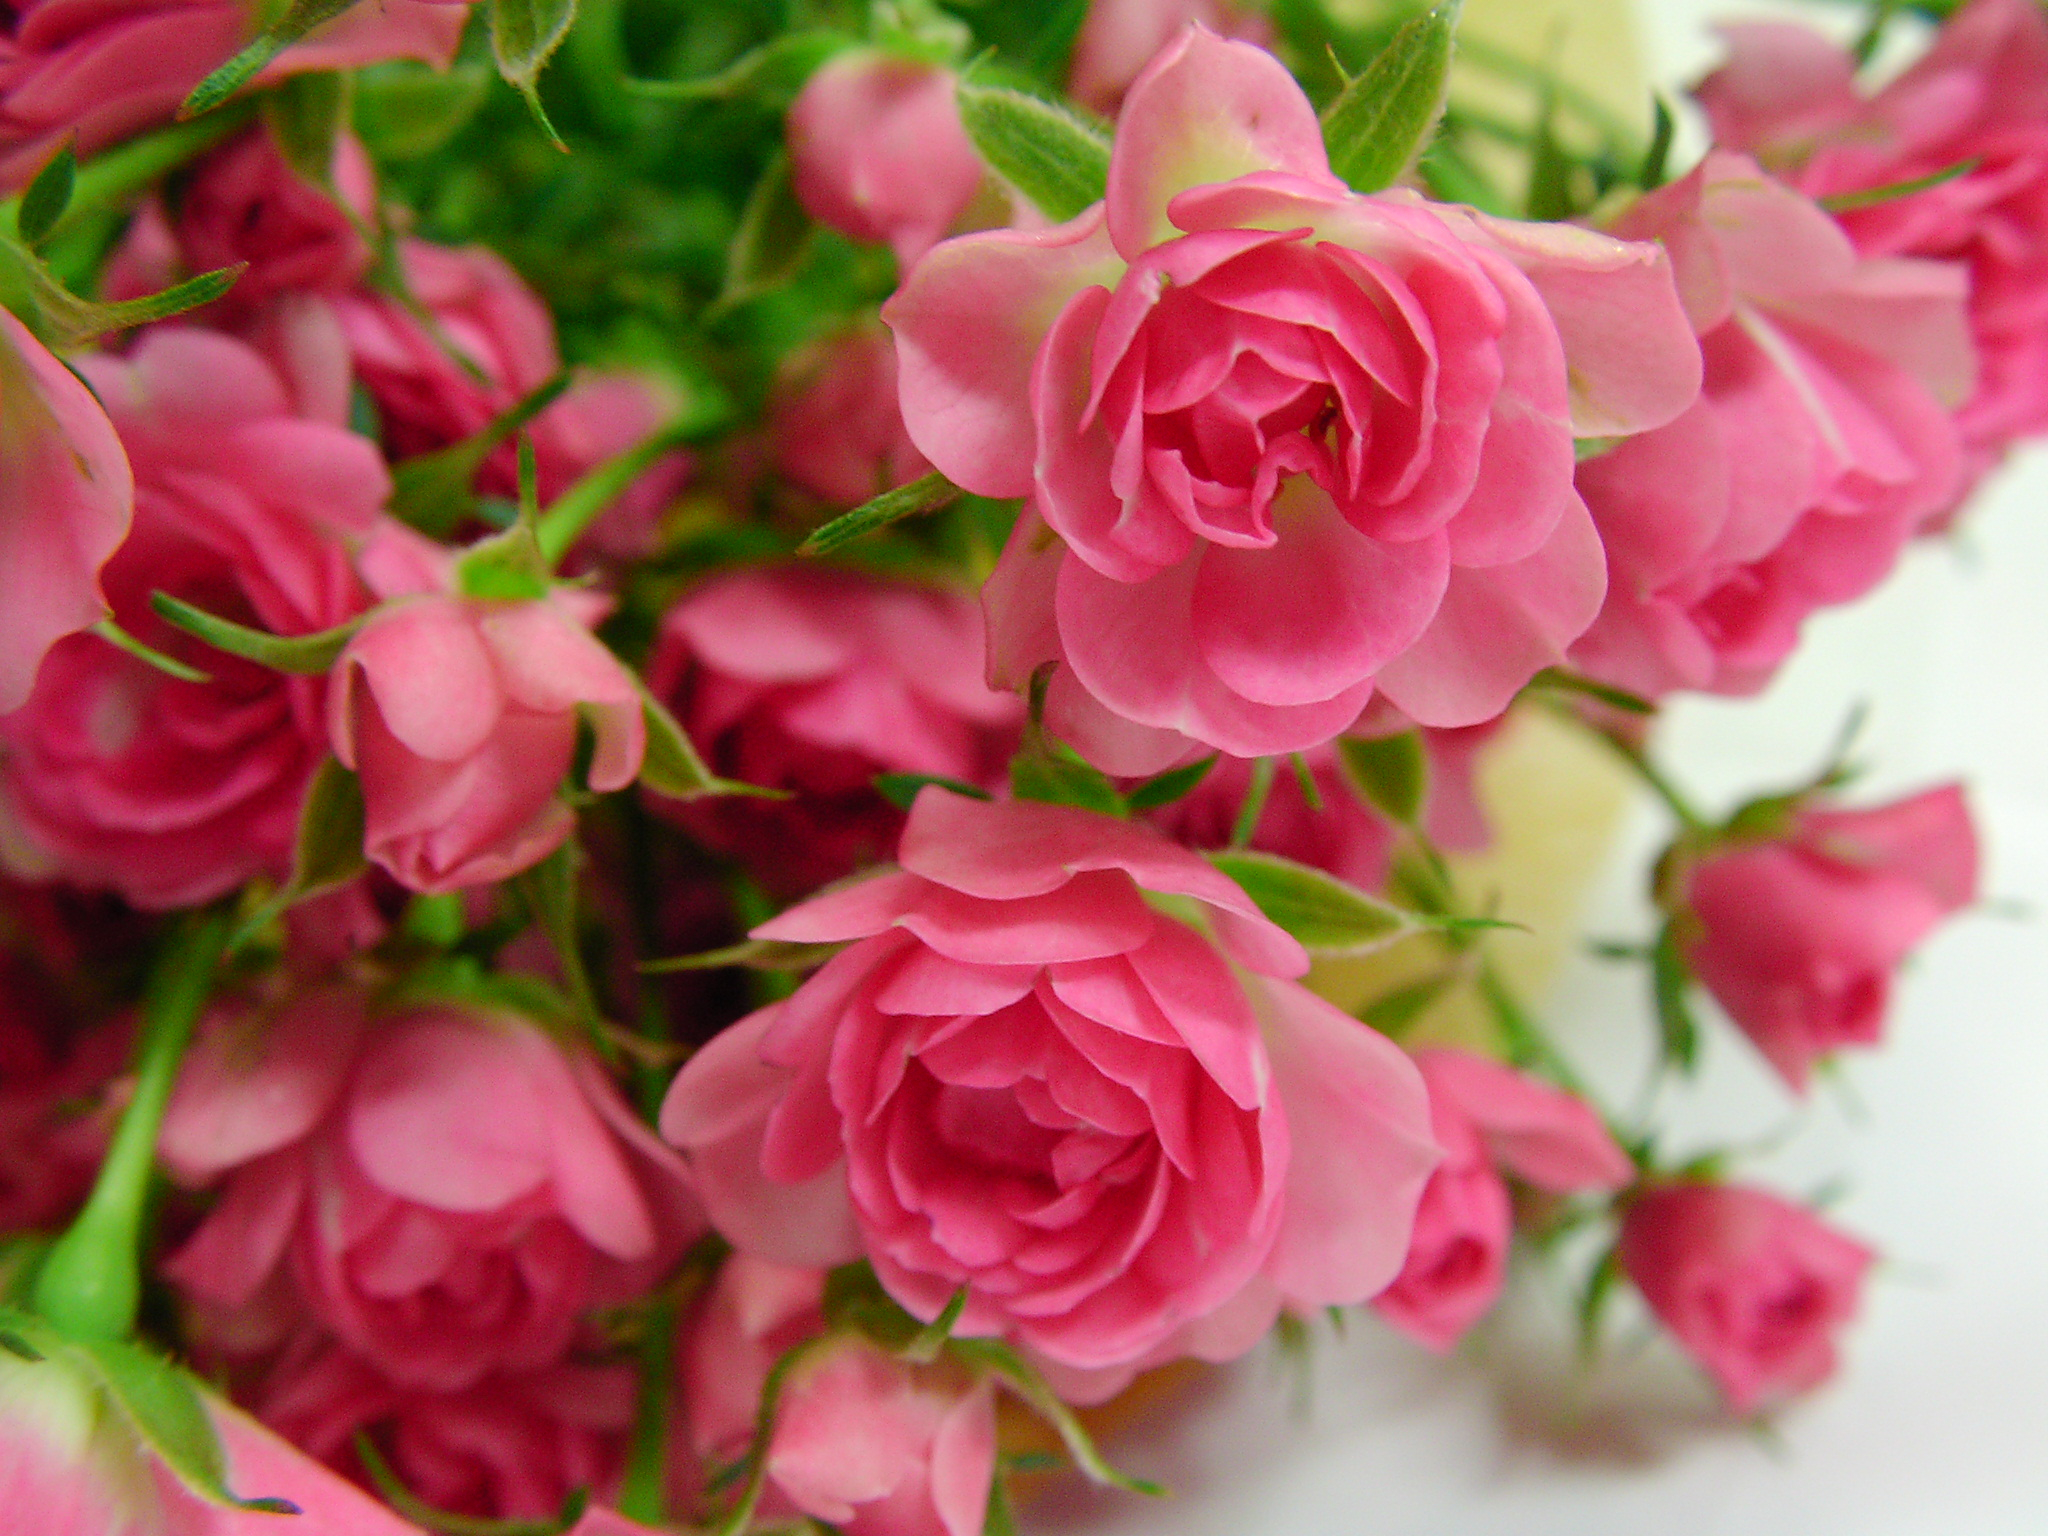 Miniature roses deserve major attention